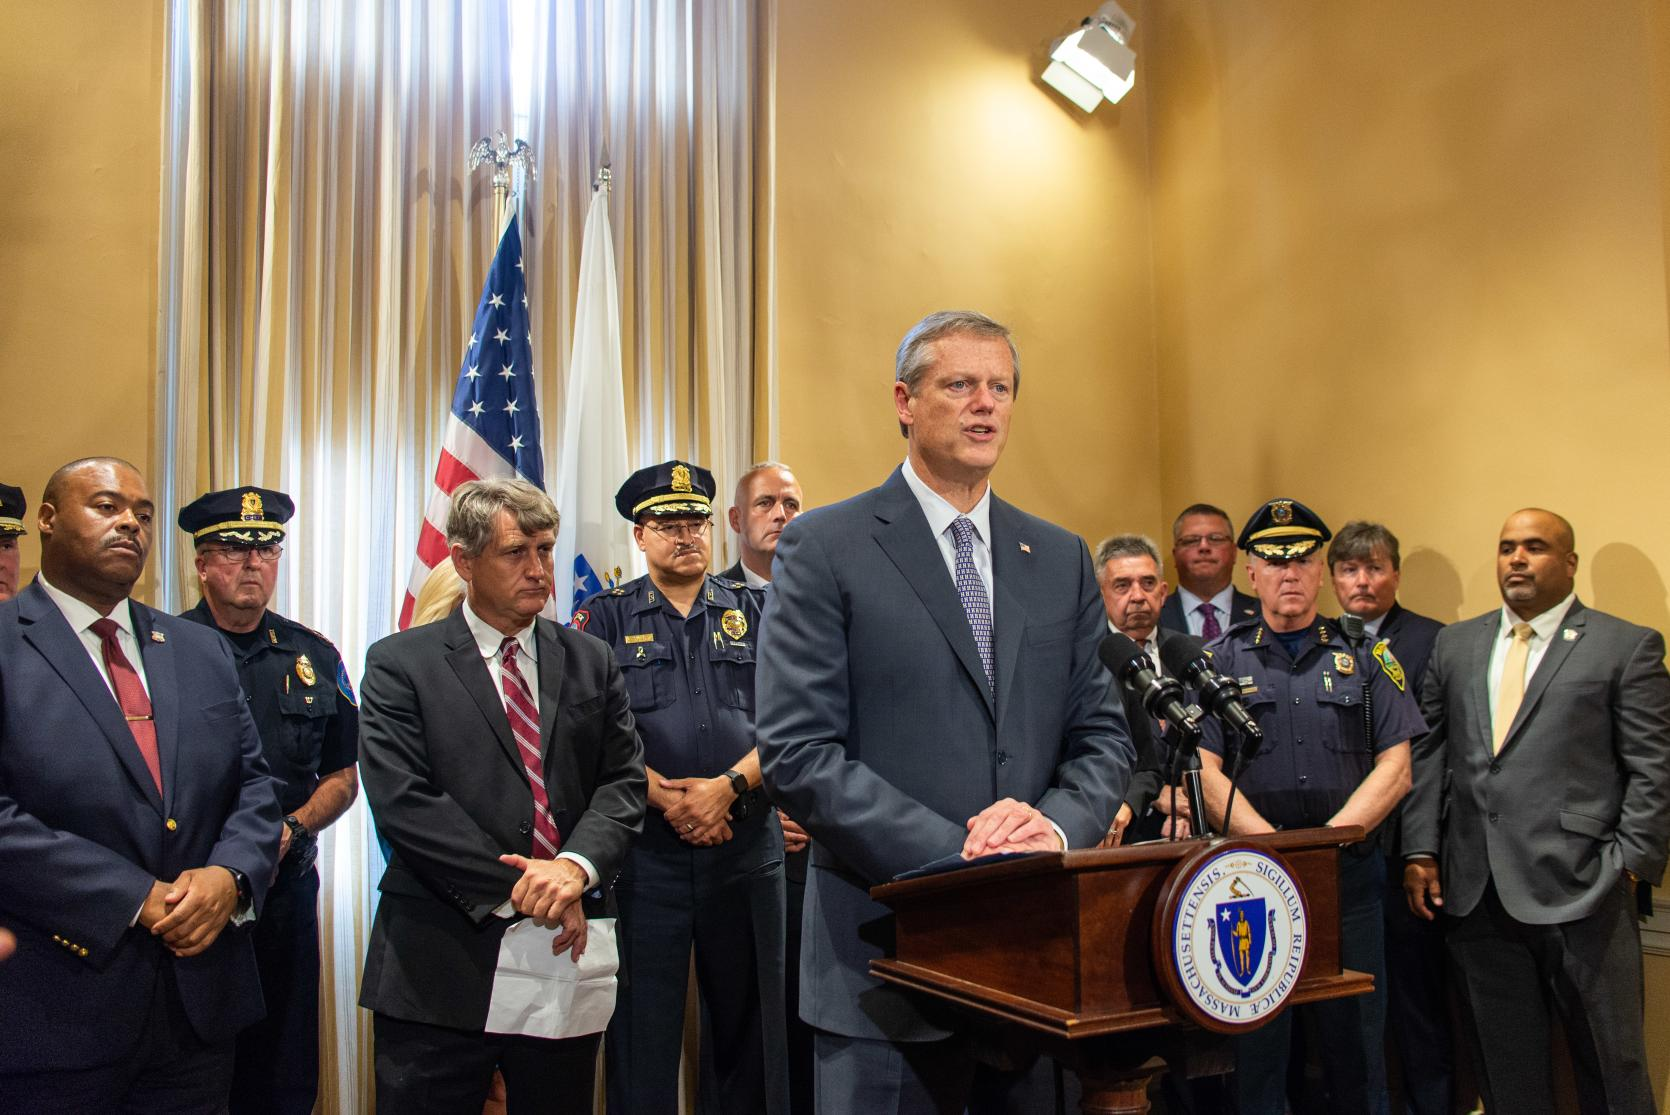 Governor Baker announces dangerousness legislation with members of law enforcement and district attorneys.